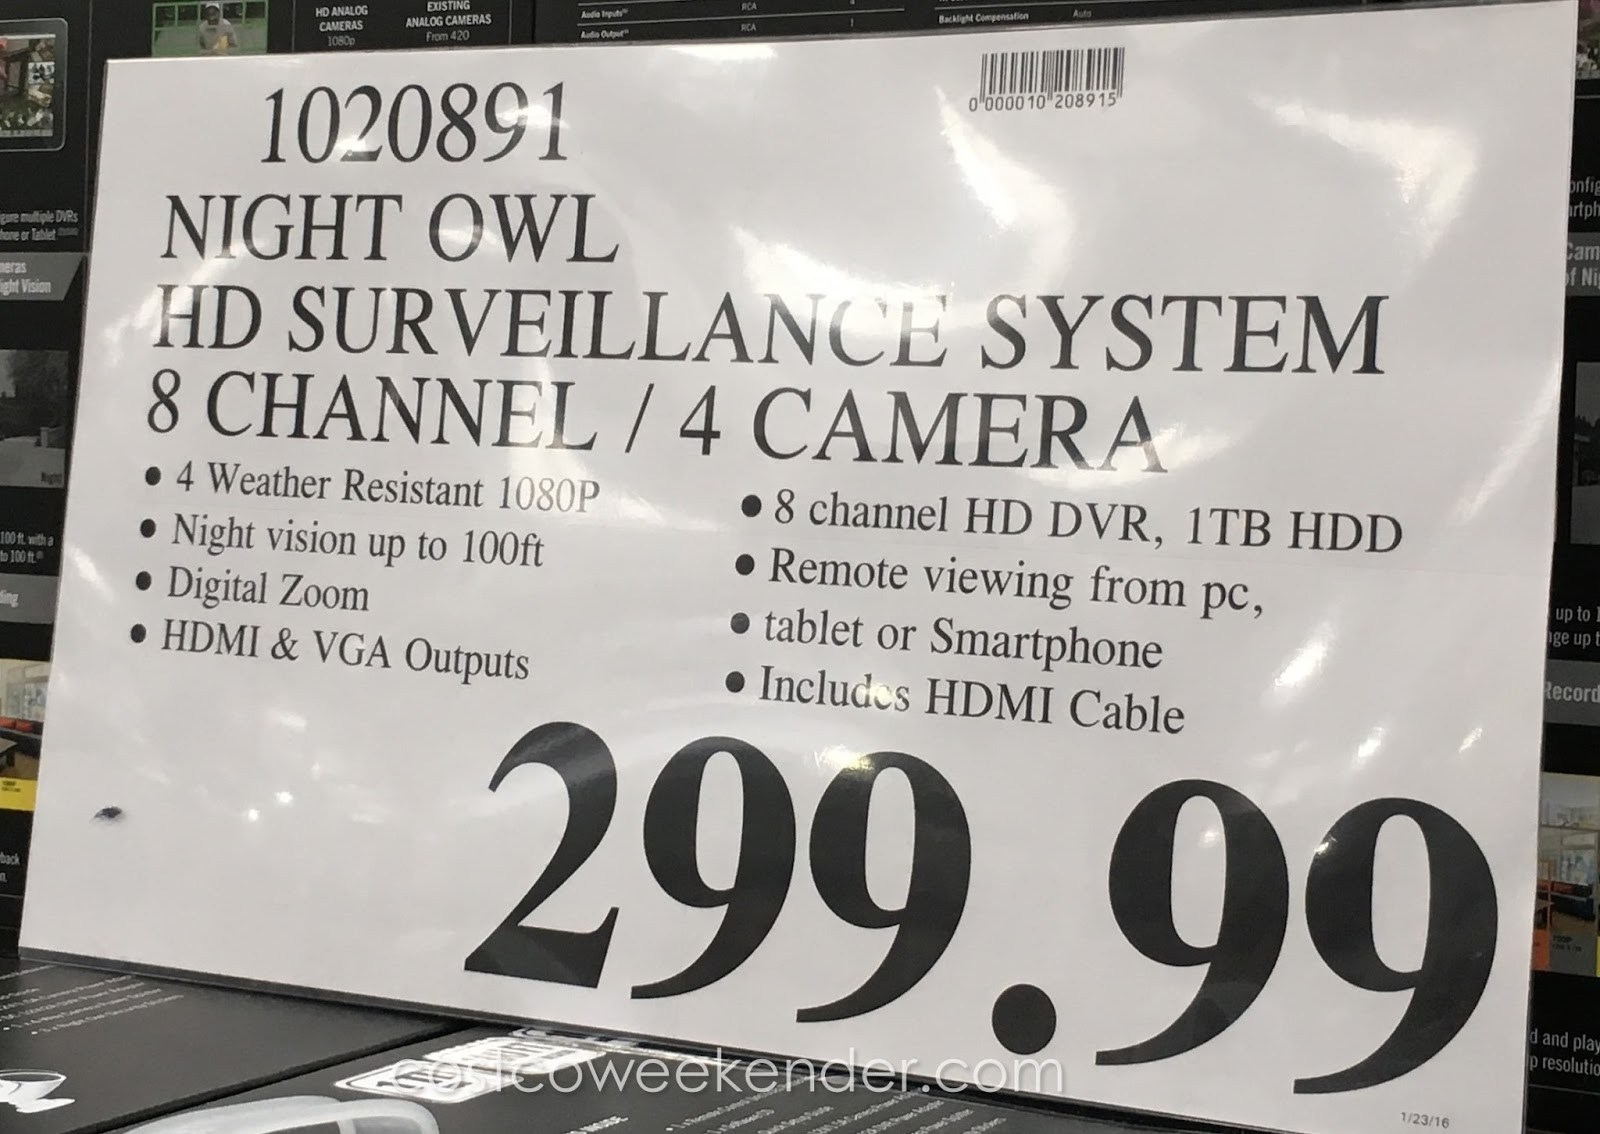 Night Owl C-841-A10 HD Video Security System